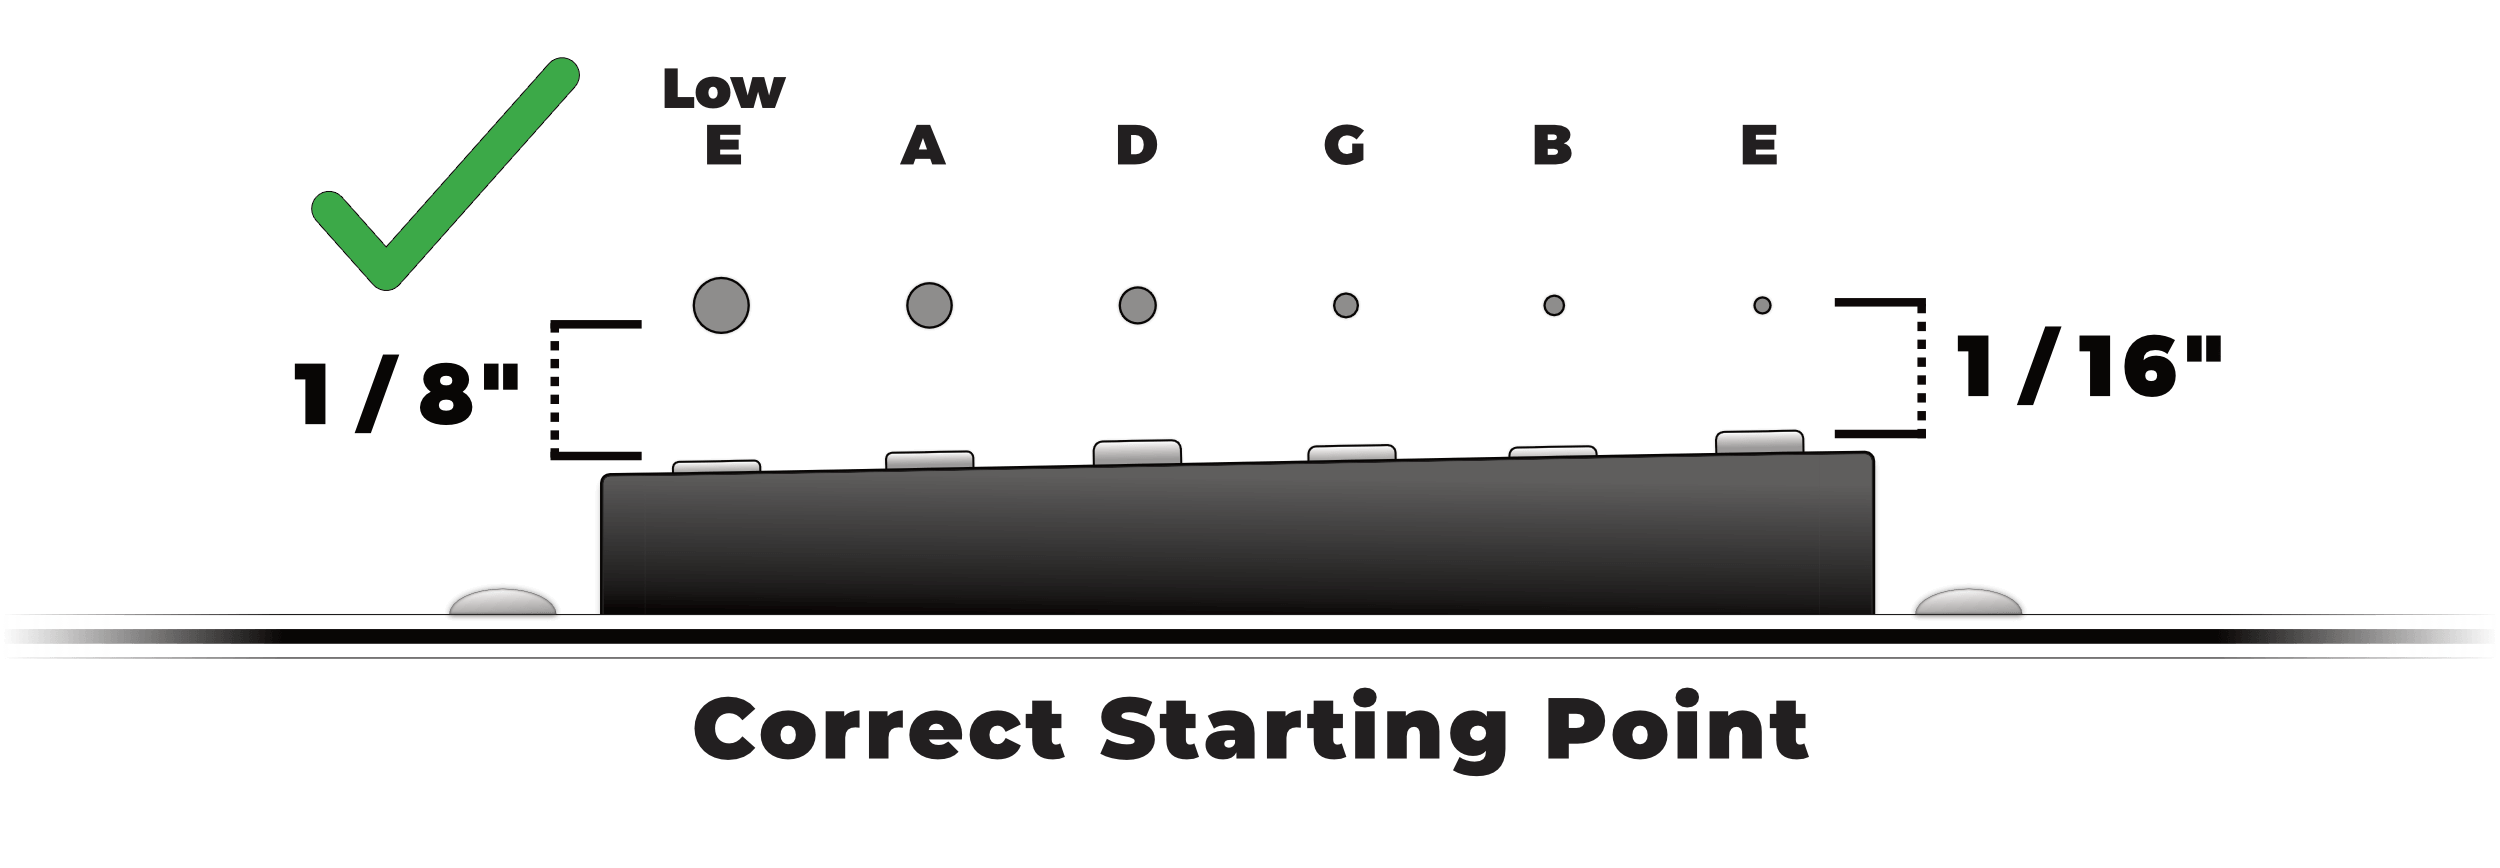 Correct Pickup Height Starting Point